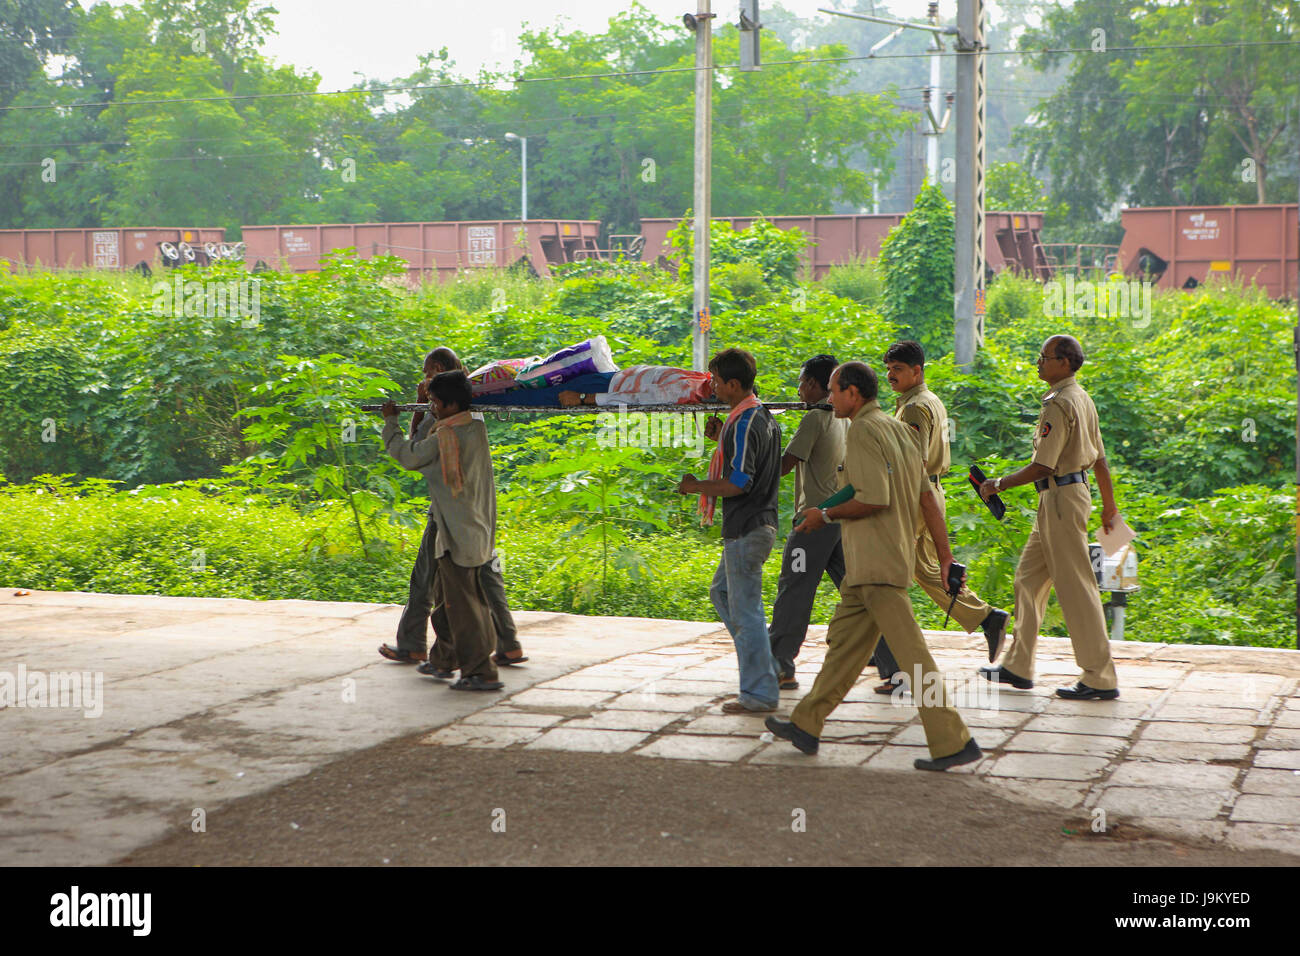 rescue team carrying Rail accident body on stretcher, kalyan, mumbai, maharashtra, India, Asia - Stock Image